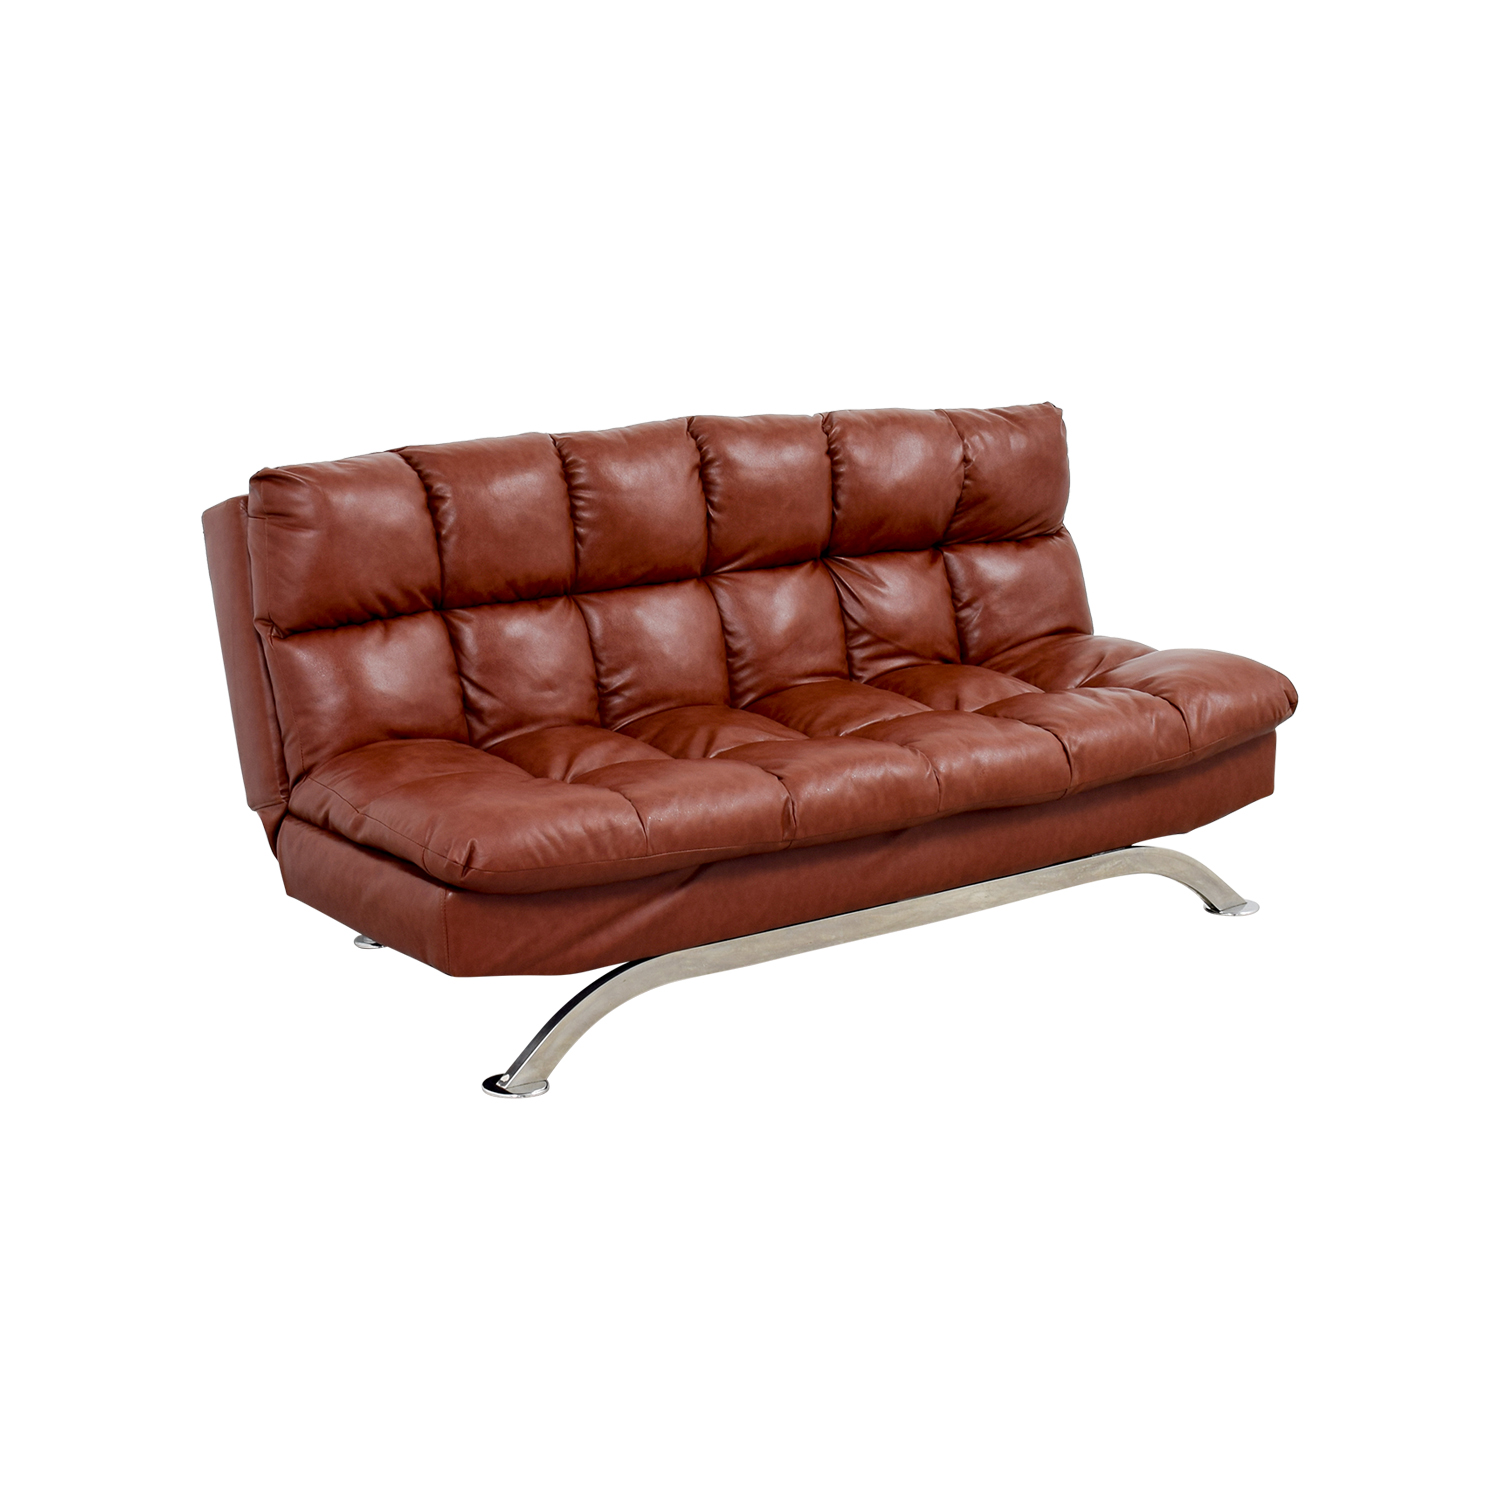 Astonishing 62 Off Wayfair Wayfair Brookeville Brown Leather Sleeper Futon Sofas Andrewgaddart Wooden Chair Designs For Living Room Andrewgaddartcom